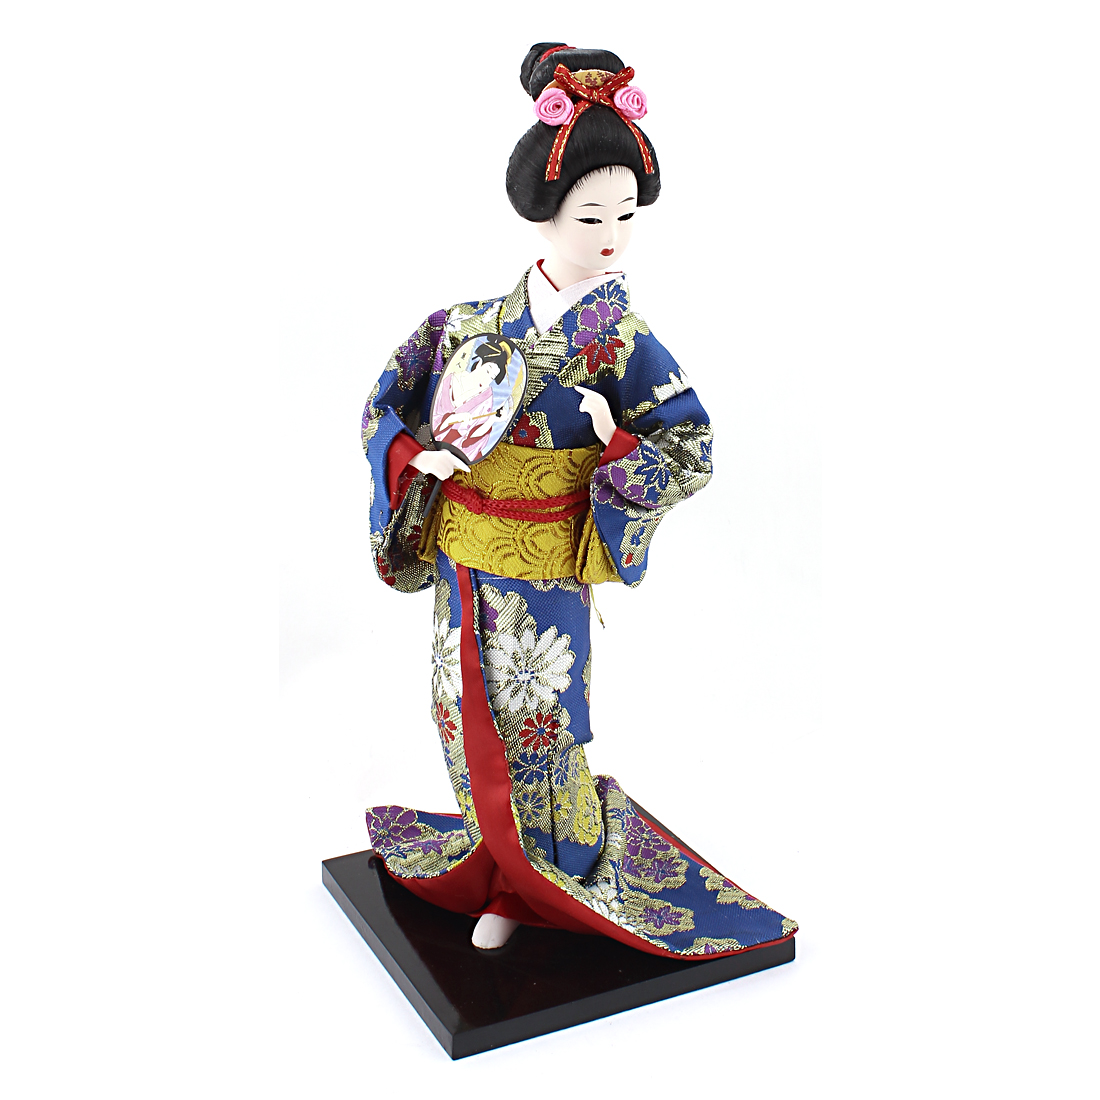 Japanese Woman Statue Figurine Crafts Doll Festival Gift 32cm Height